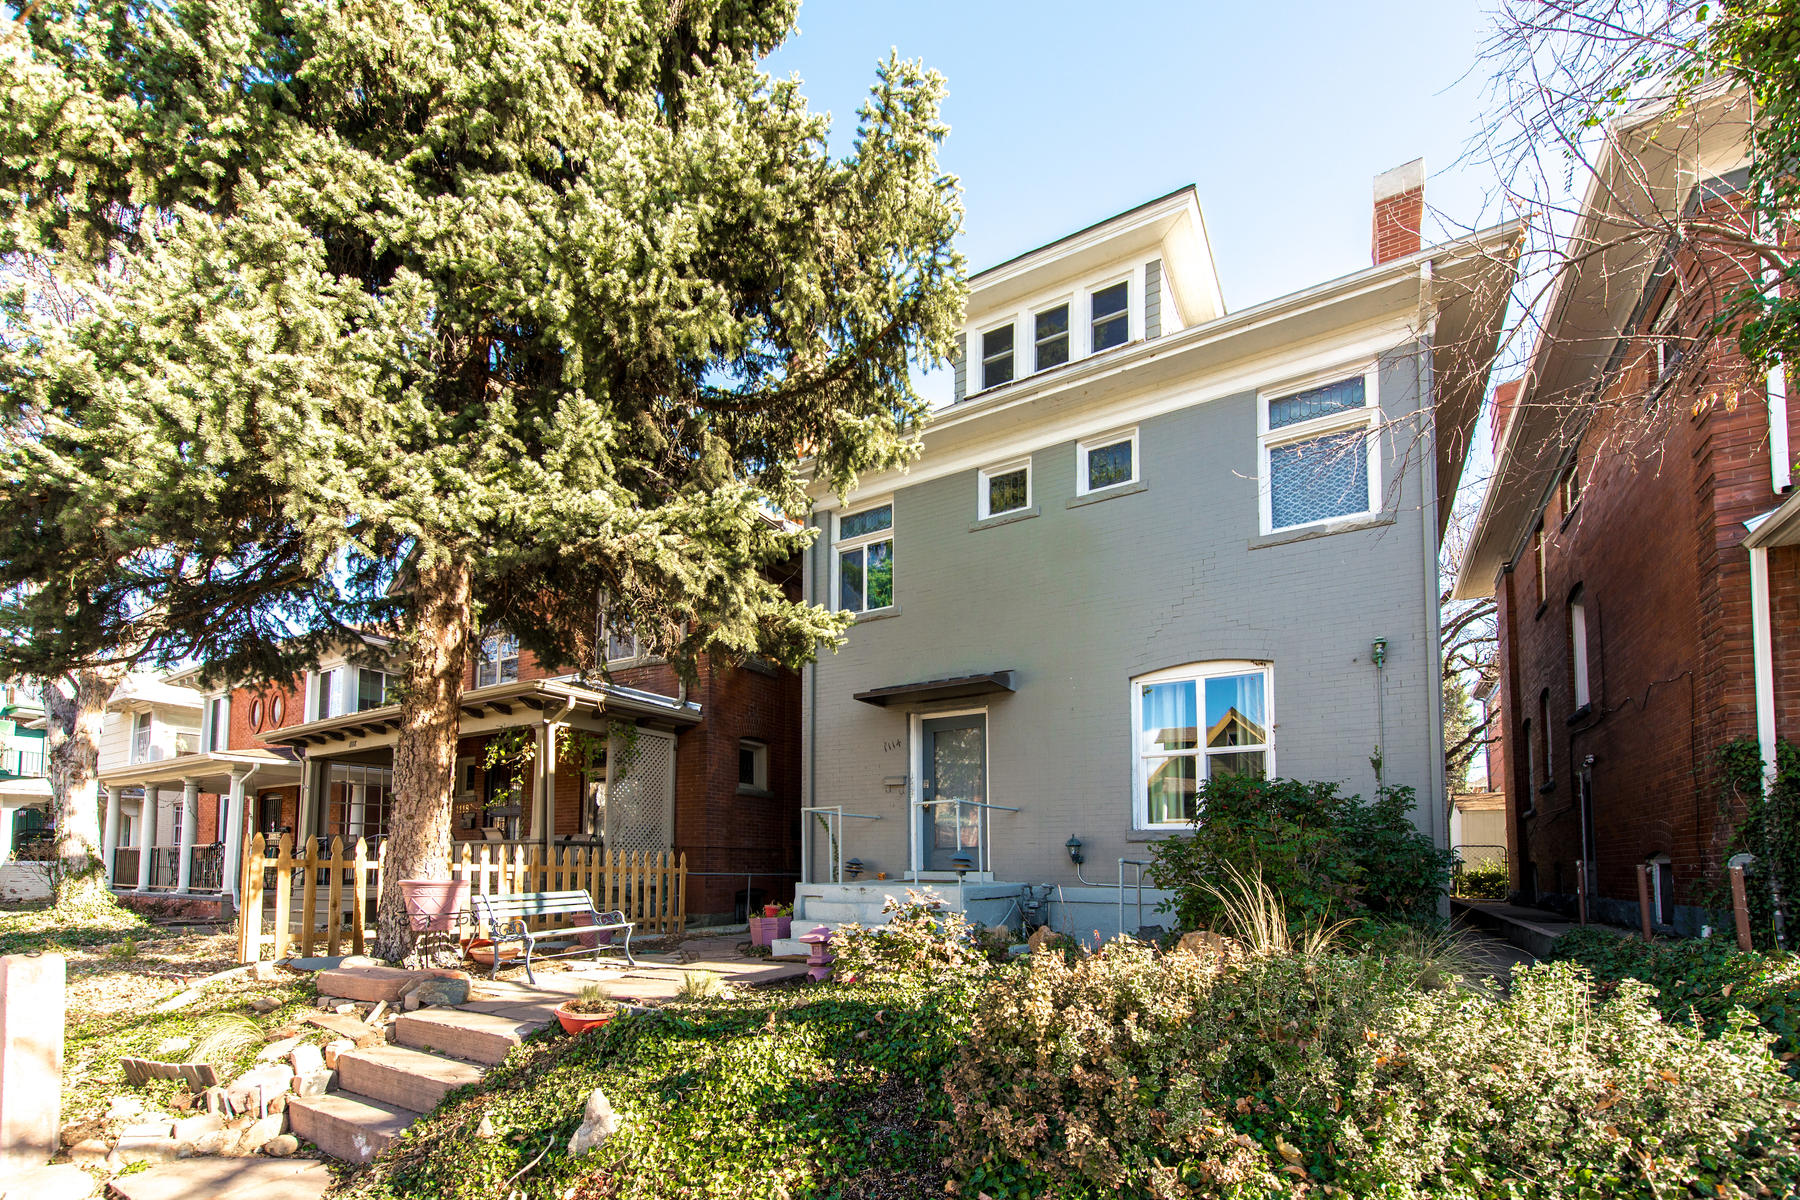 Multi-Family Home for Active at Great opportunity. Rent all 5 units or live in one and let the tenants pay your 1114 Downing Street Denver, Colorado 80218 United States